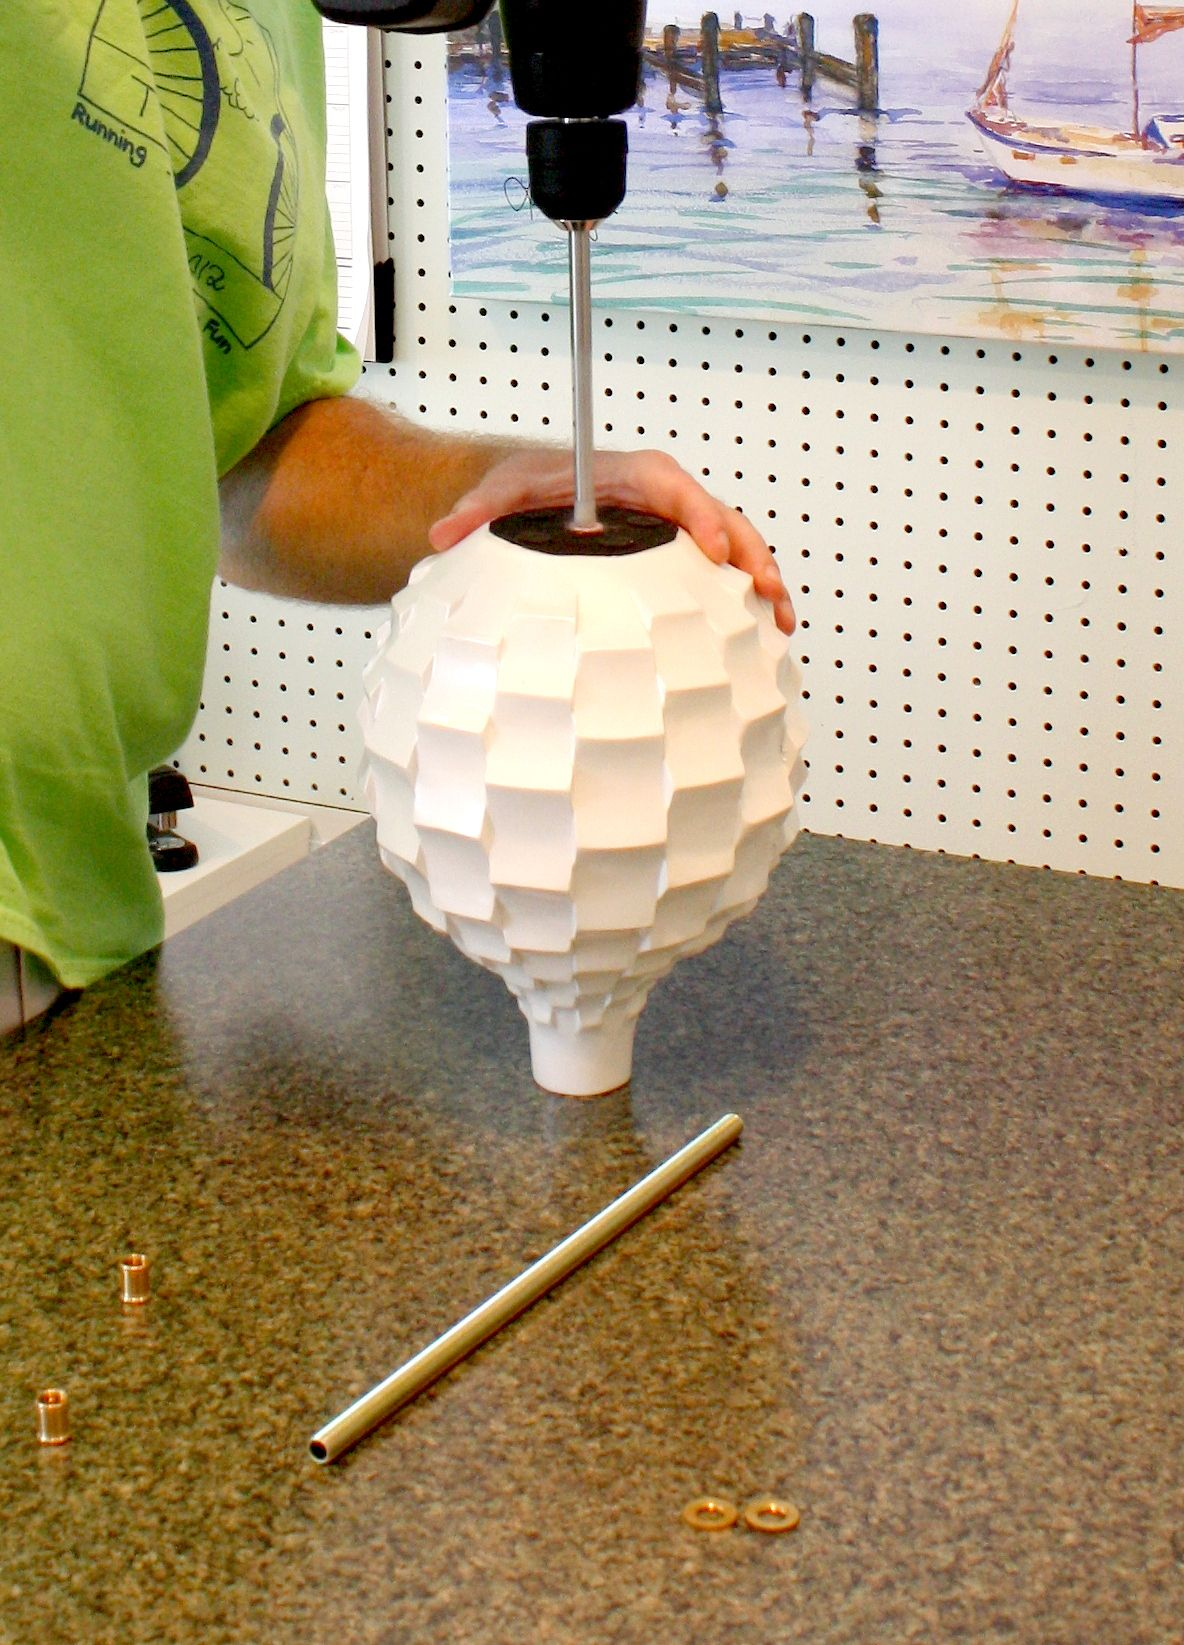 How To Make a Lamp from a Vase | Watch this Video & DIY Tutorial